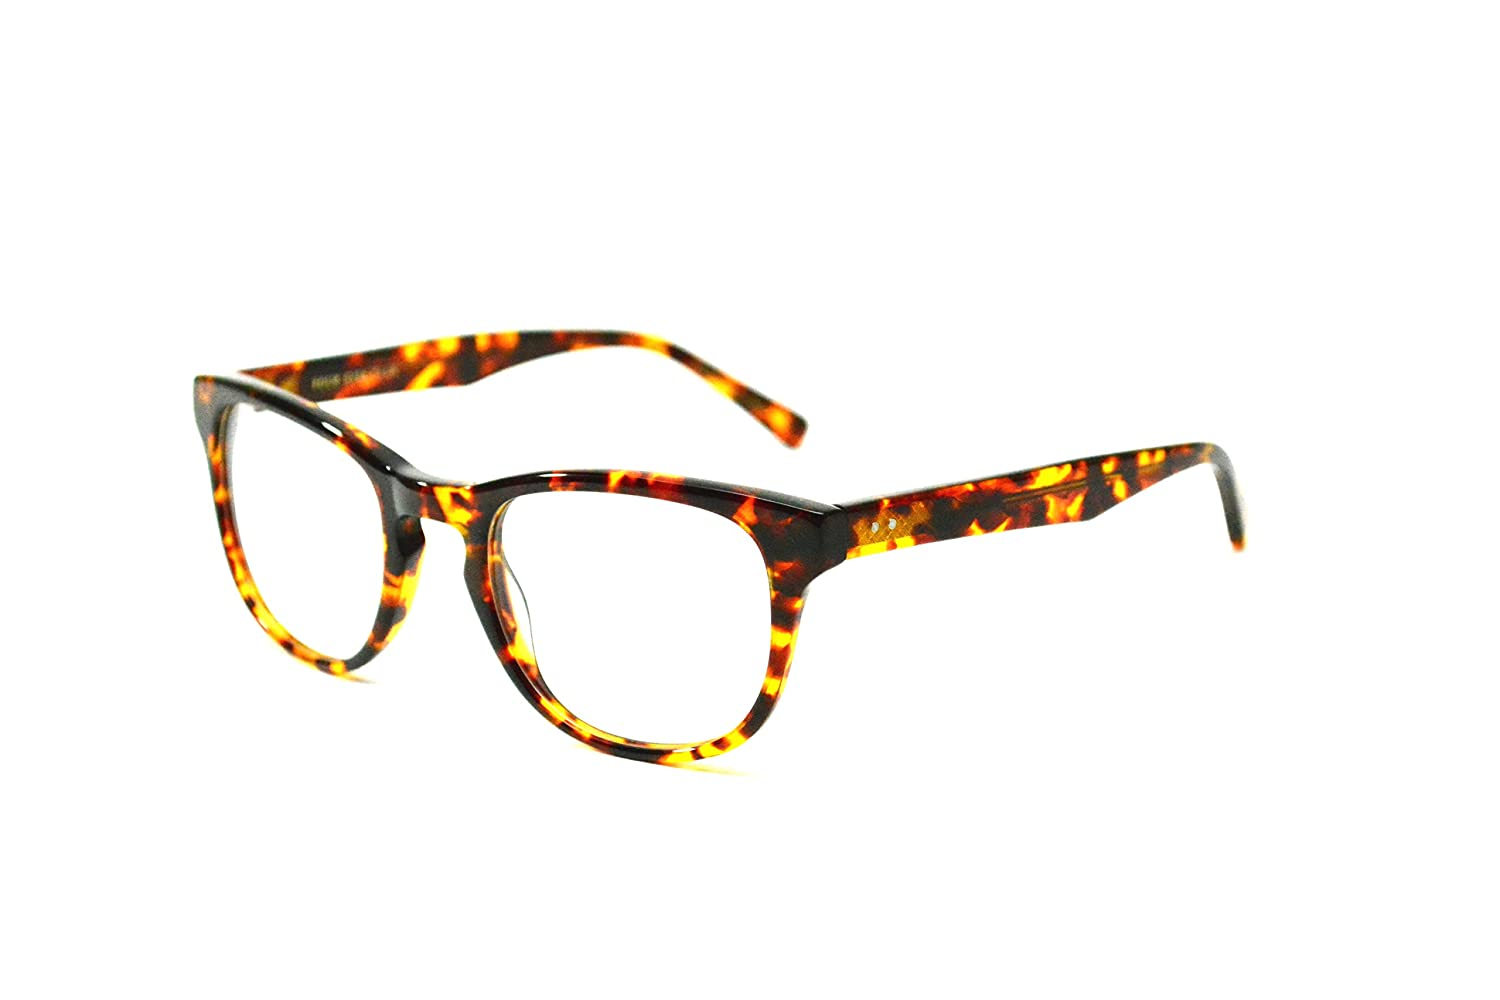 41abb486c87 Four Eyes Club Capella TOTB Wayfarer eyeglasses (Woody Tortoise ...